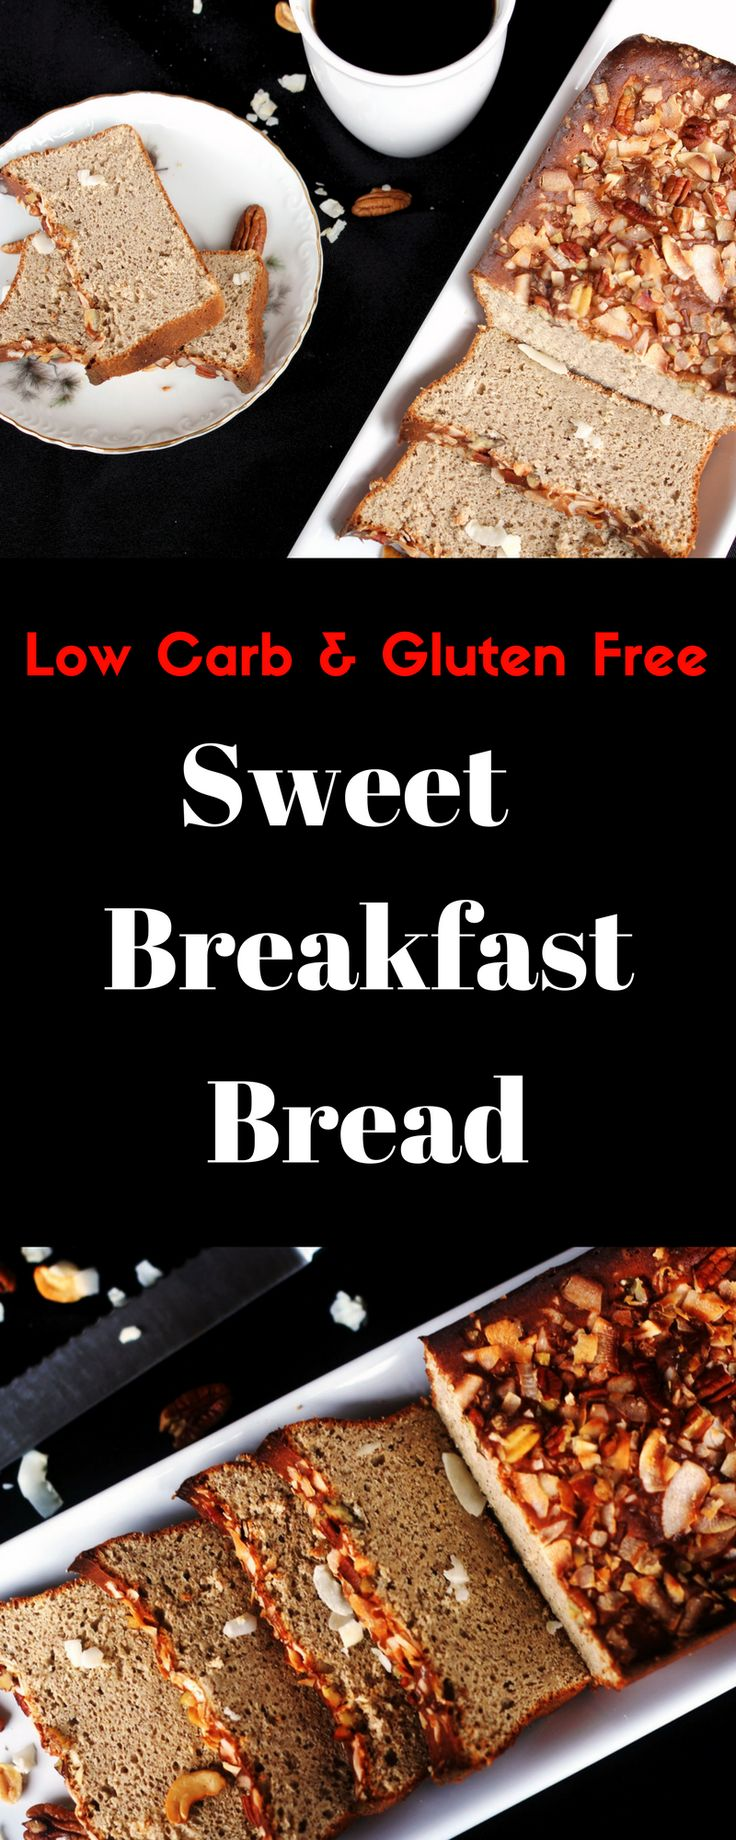 This slightly sweet breakfast bread is low carb, sugar and gluten free and works well in Keto and the Trim Healthy Mama Diets.